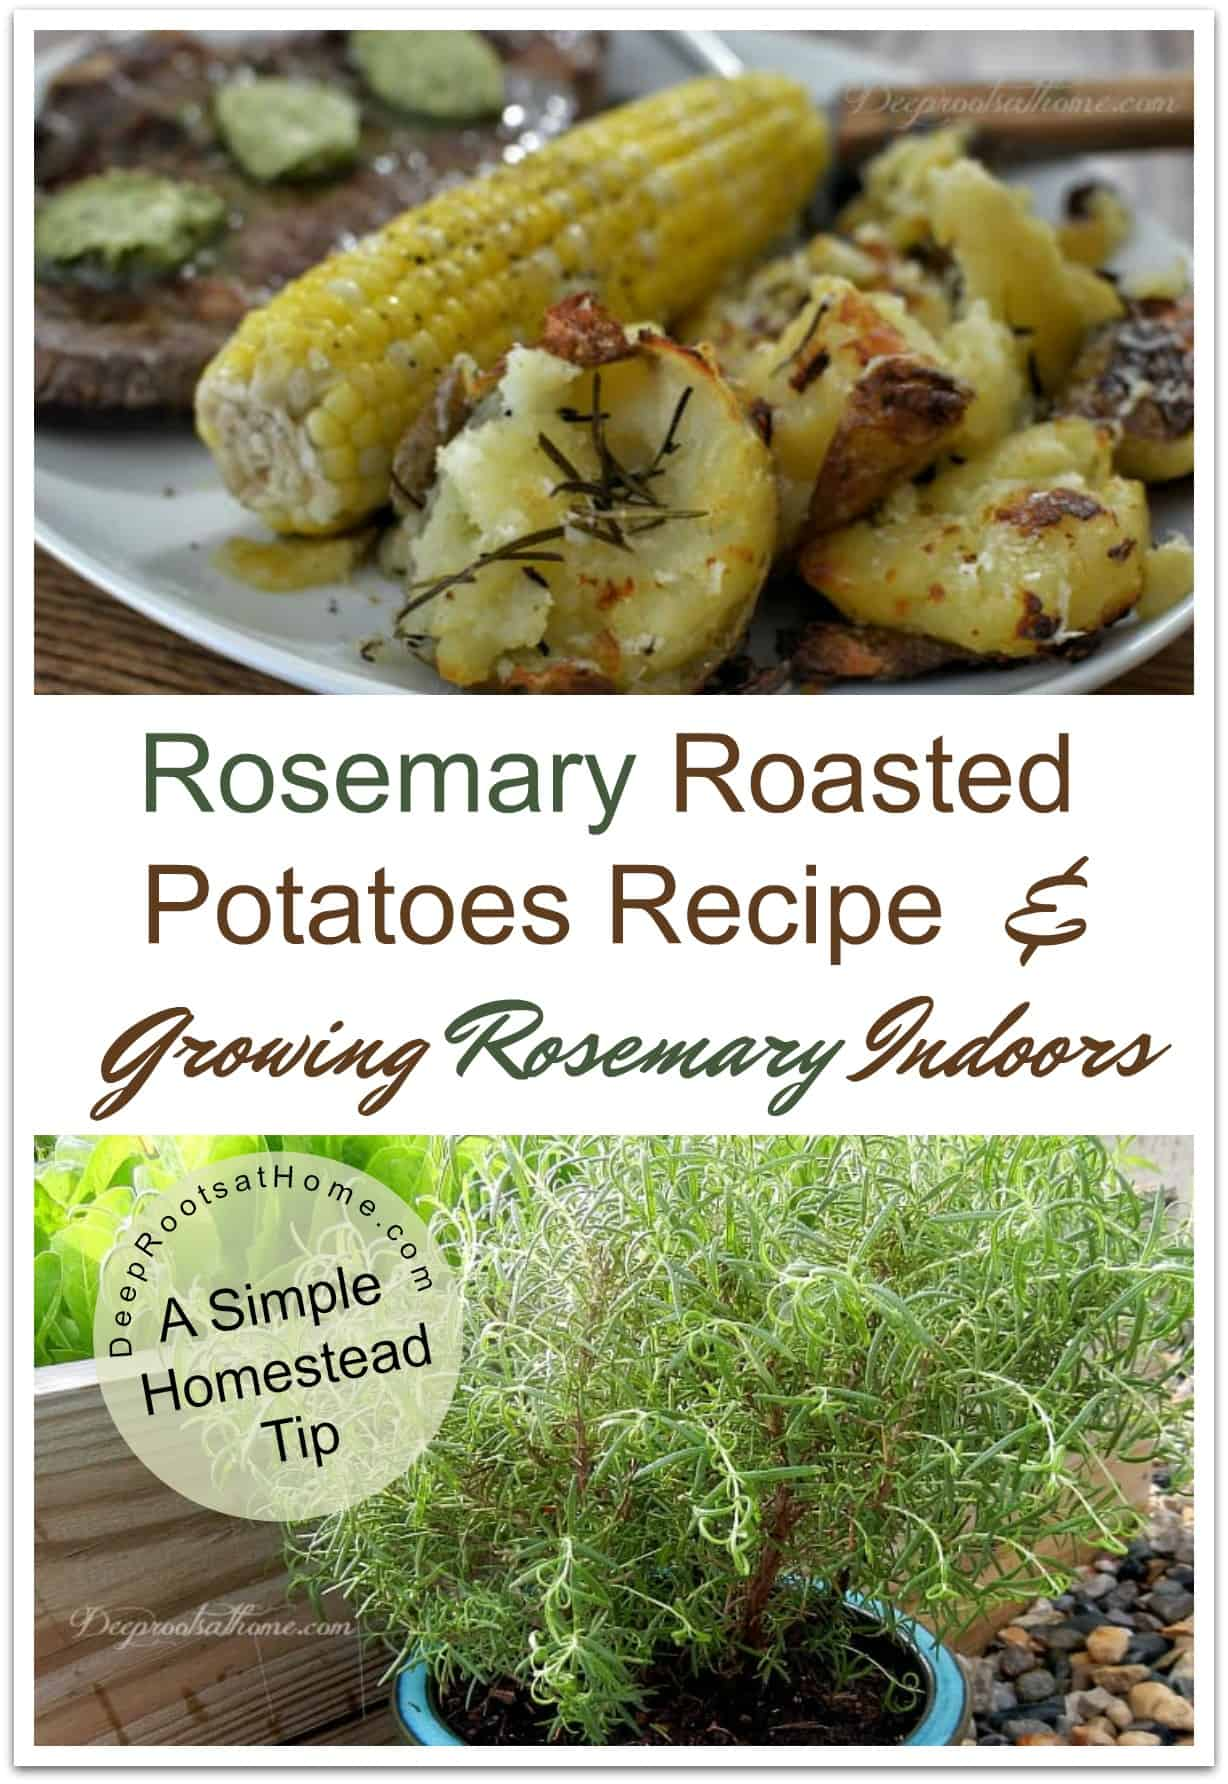 Rosemary Roasted Potatoes Recipe & Growing Rosemary Indoors. Rosemary roasted potatoes, corn and steak.